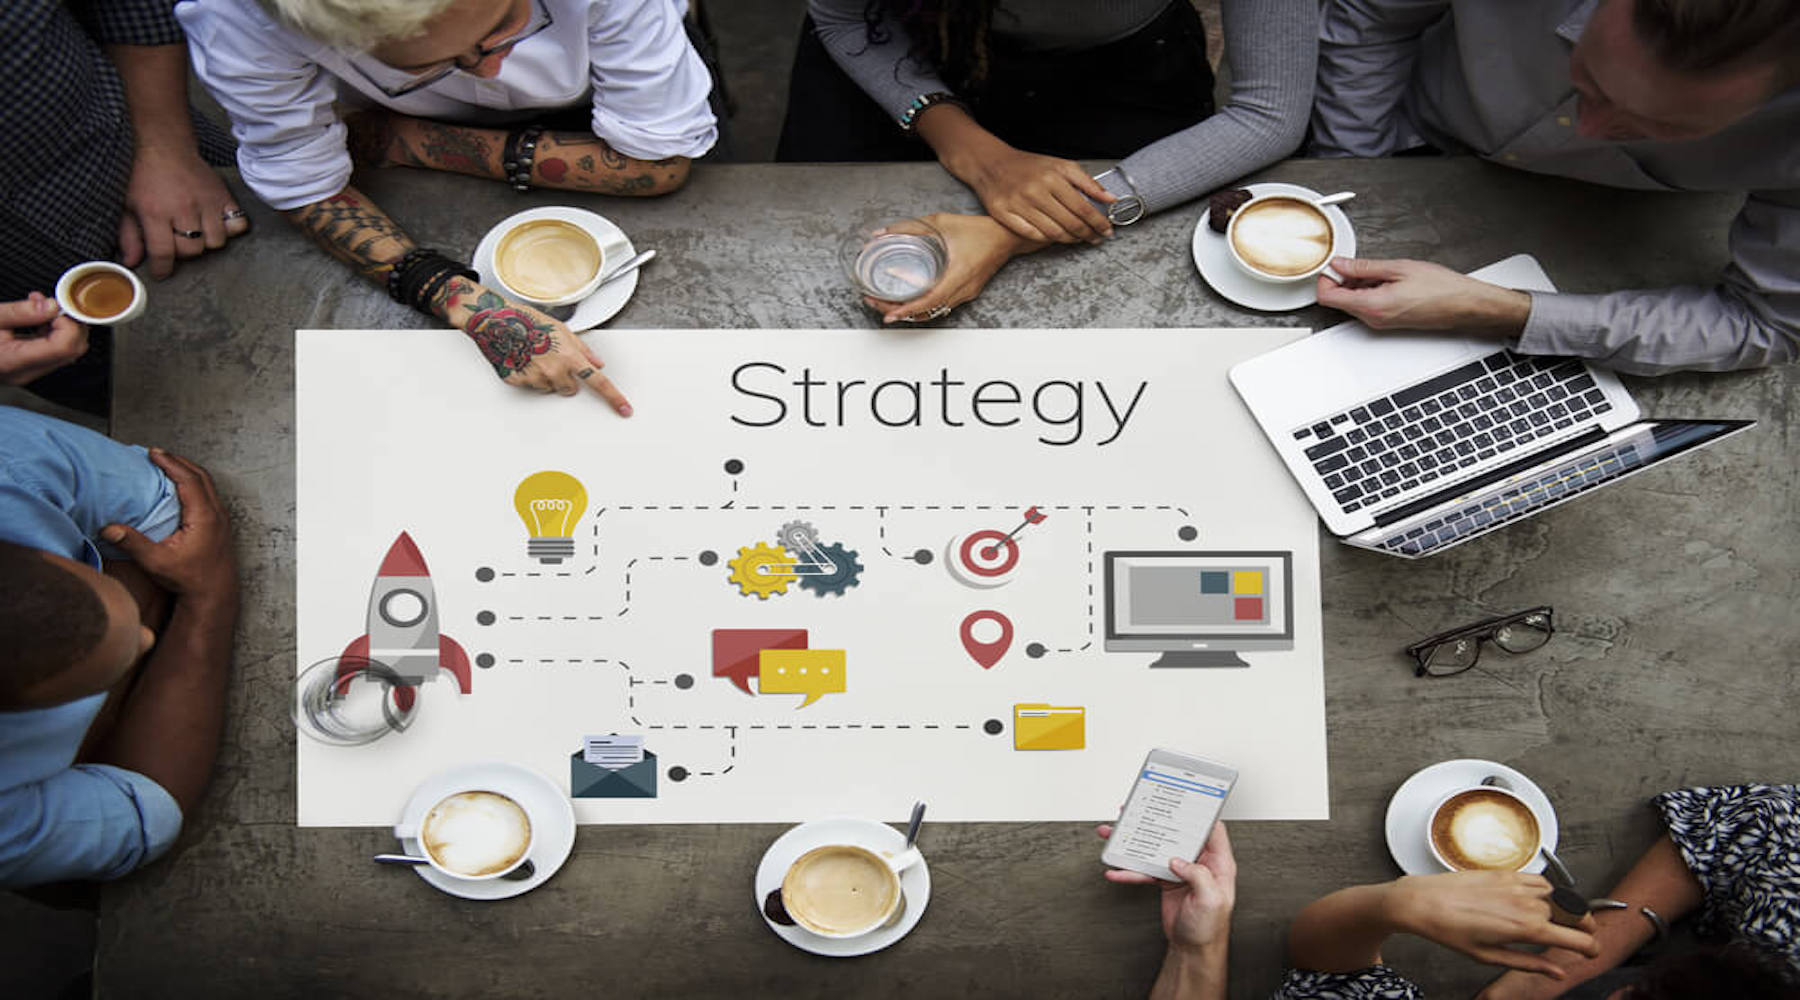 Are you looking to promote your company digitally but are not sure where to start? First things first you should look at creating a digital strategy to help you achieve your business goals.